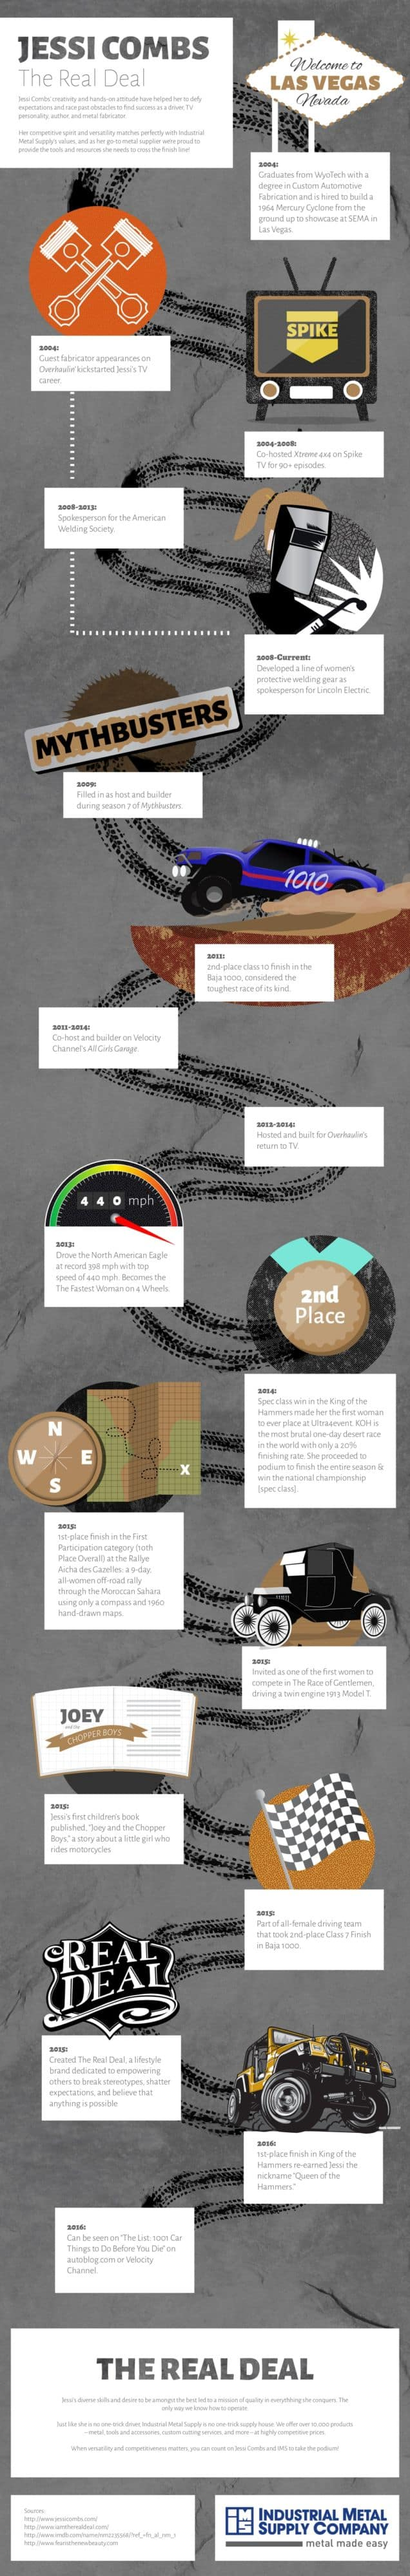 jessi combs infographic - Fastest Woman on Four Wheels